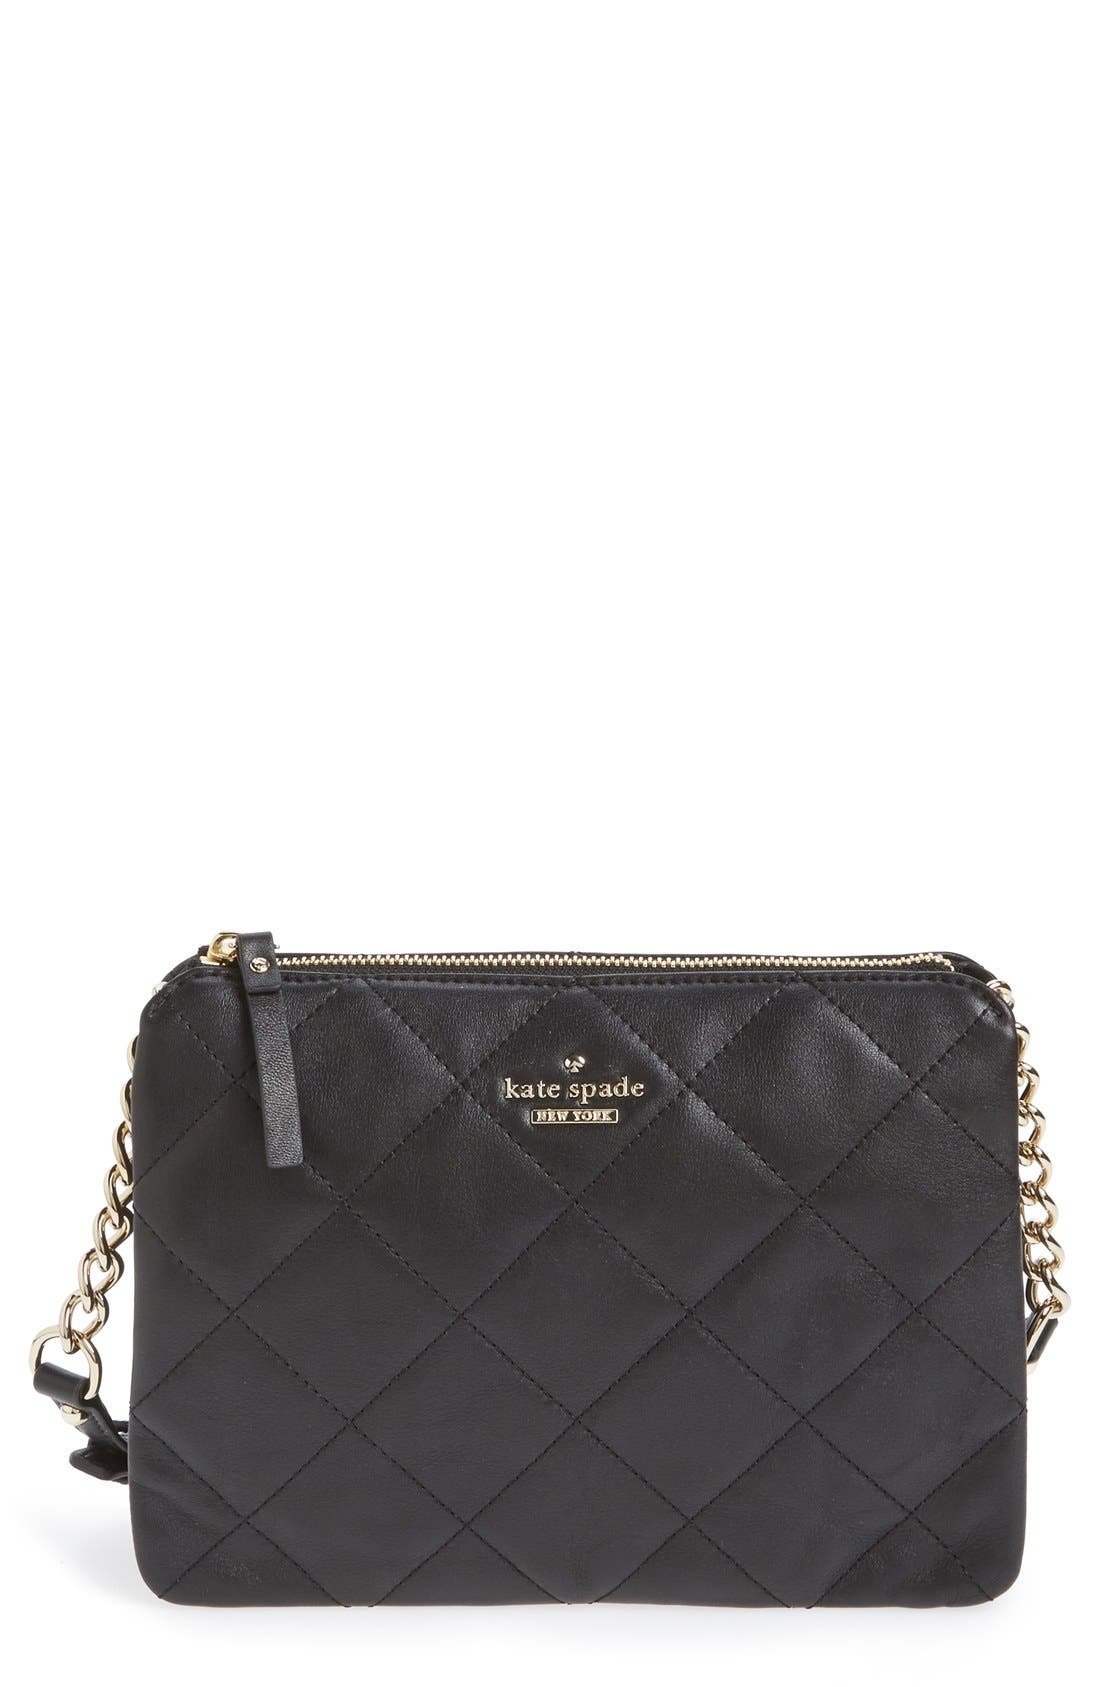 Main Image - kate spade new york emerson place harbor leather crossbody bag